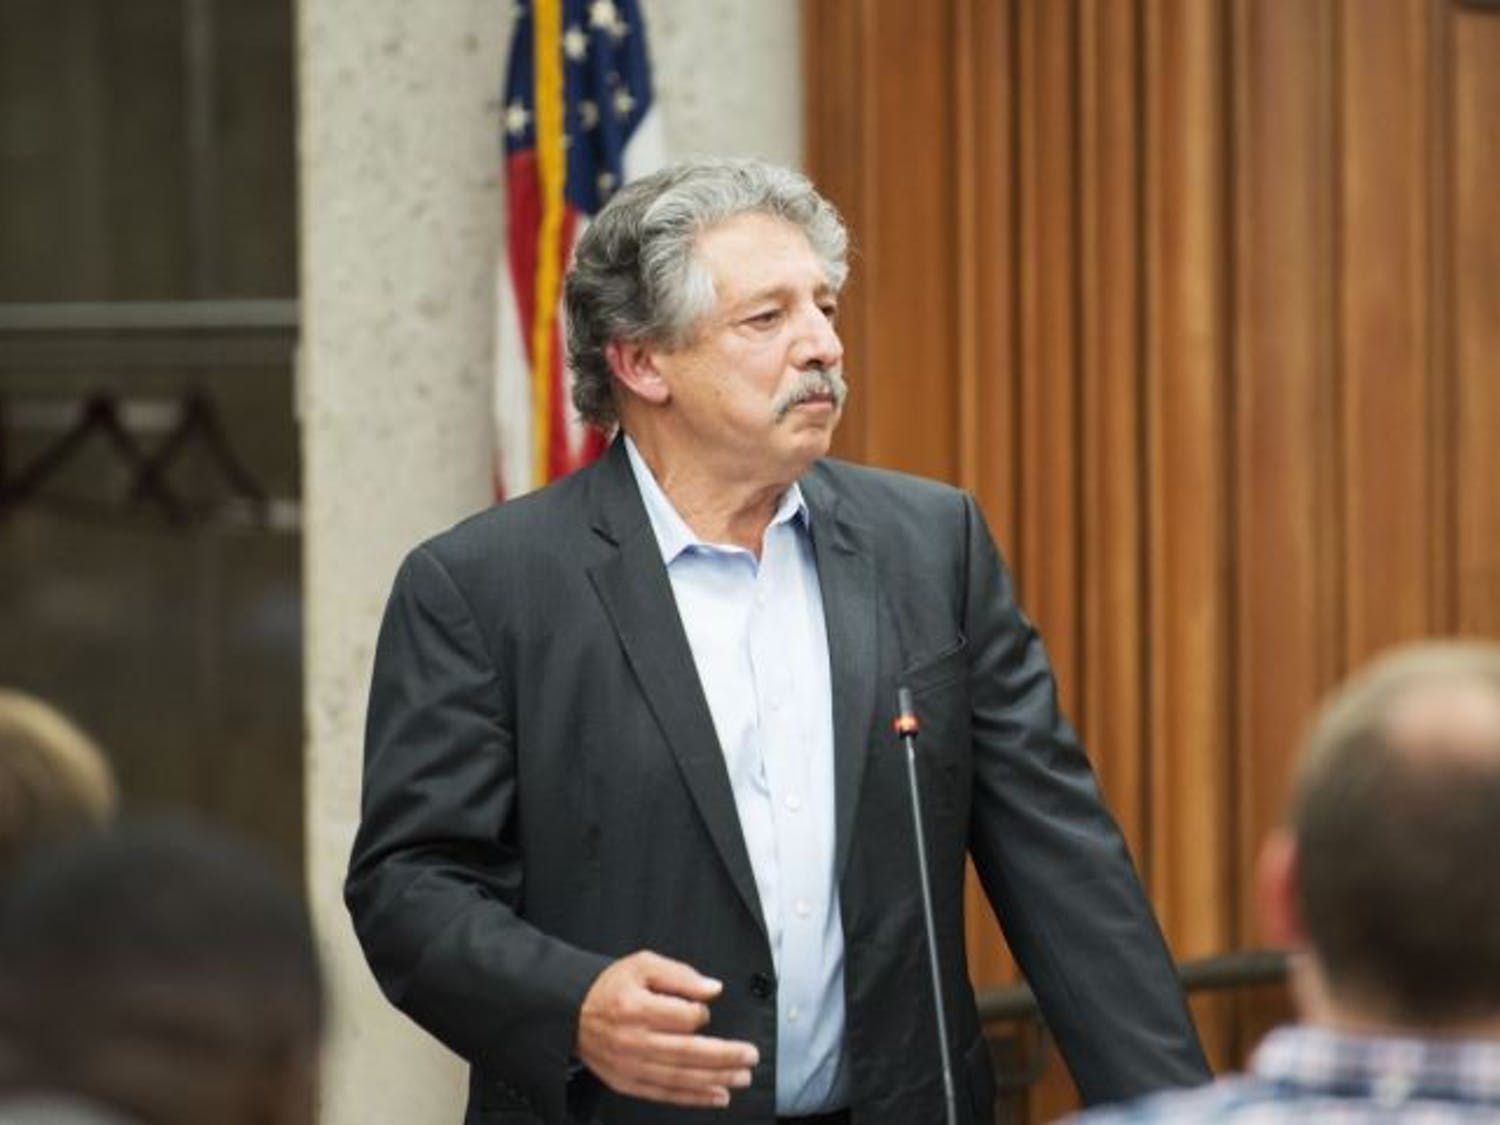 Madison Mayor Paul Soglin said Saturday he might run for Wisconsin governor, after considering the success likeminded Sen. Bernie Sanders had in last year's presidential primary.